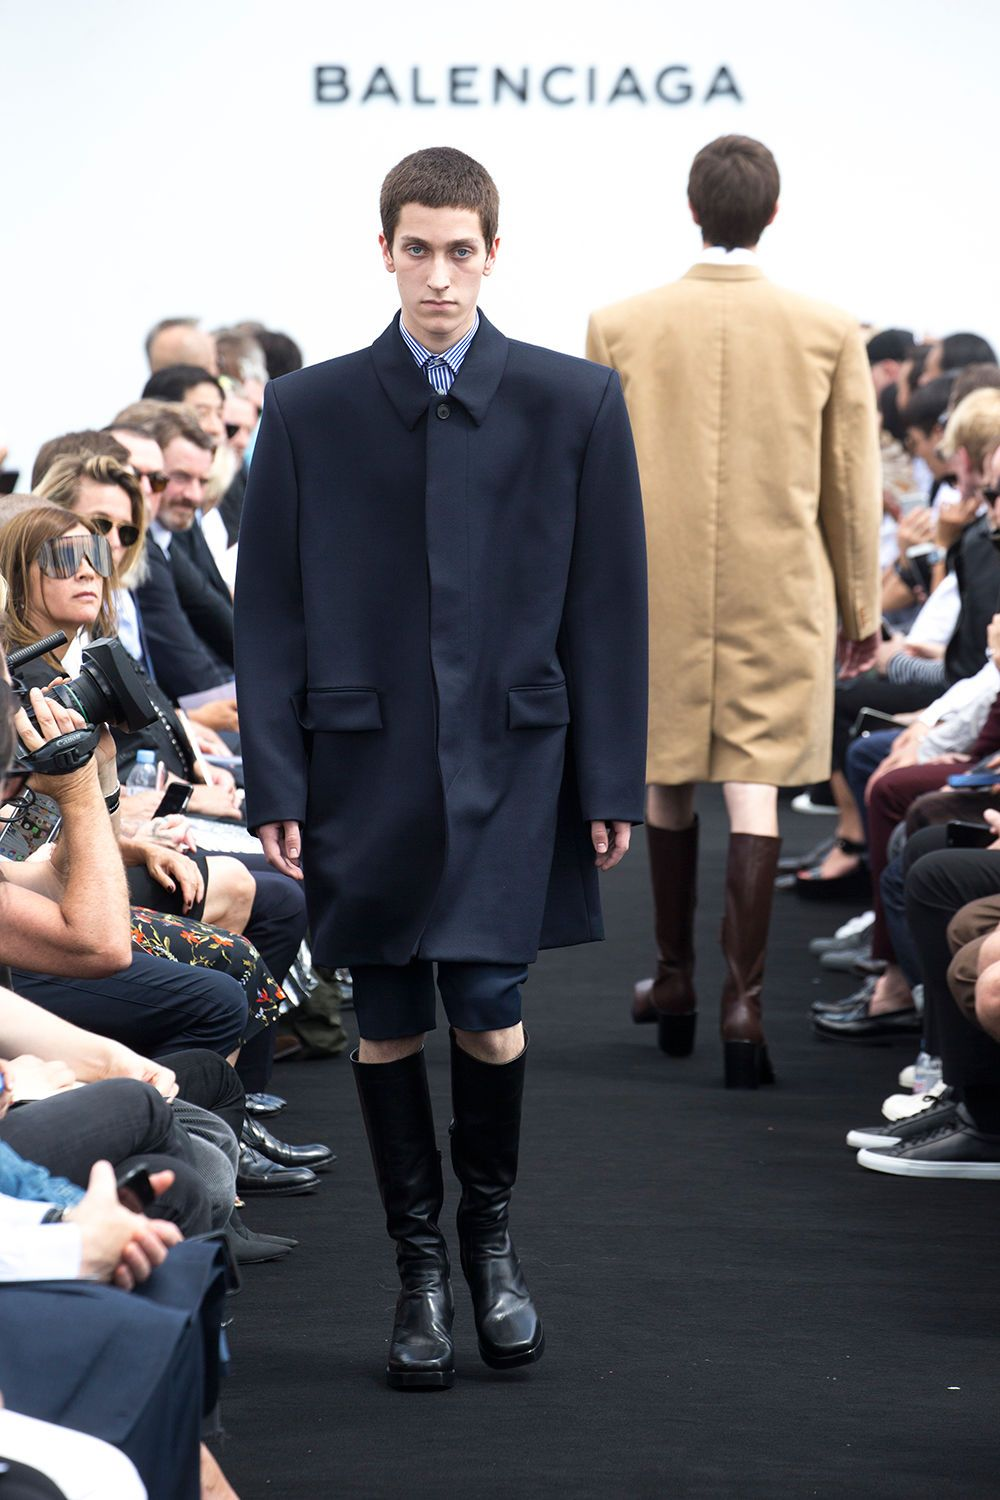 566887629d7d6 Discover the Balenciaga Women and Men Collections and shop shoes ...